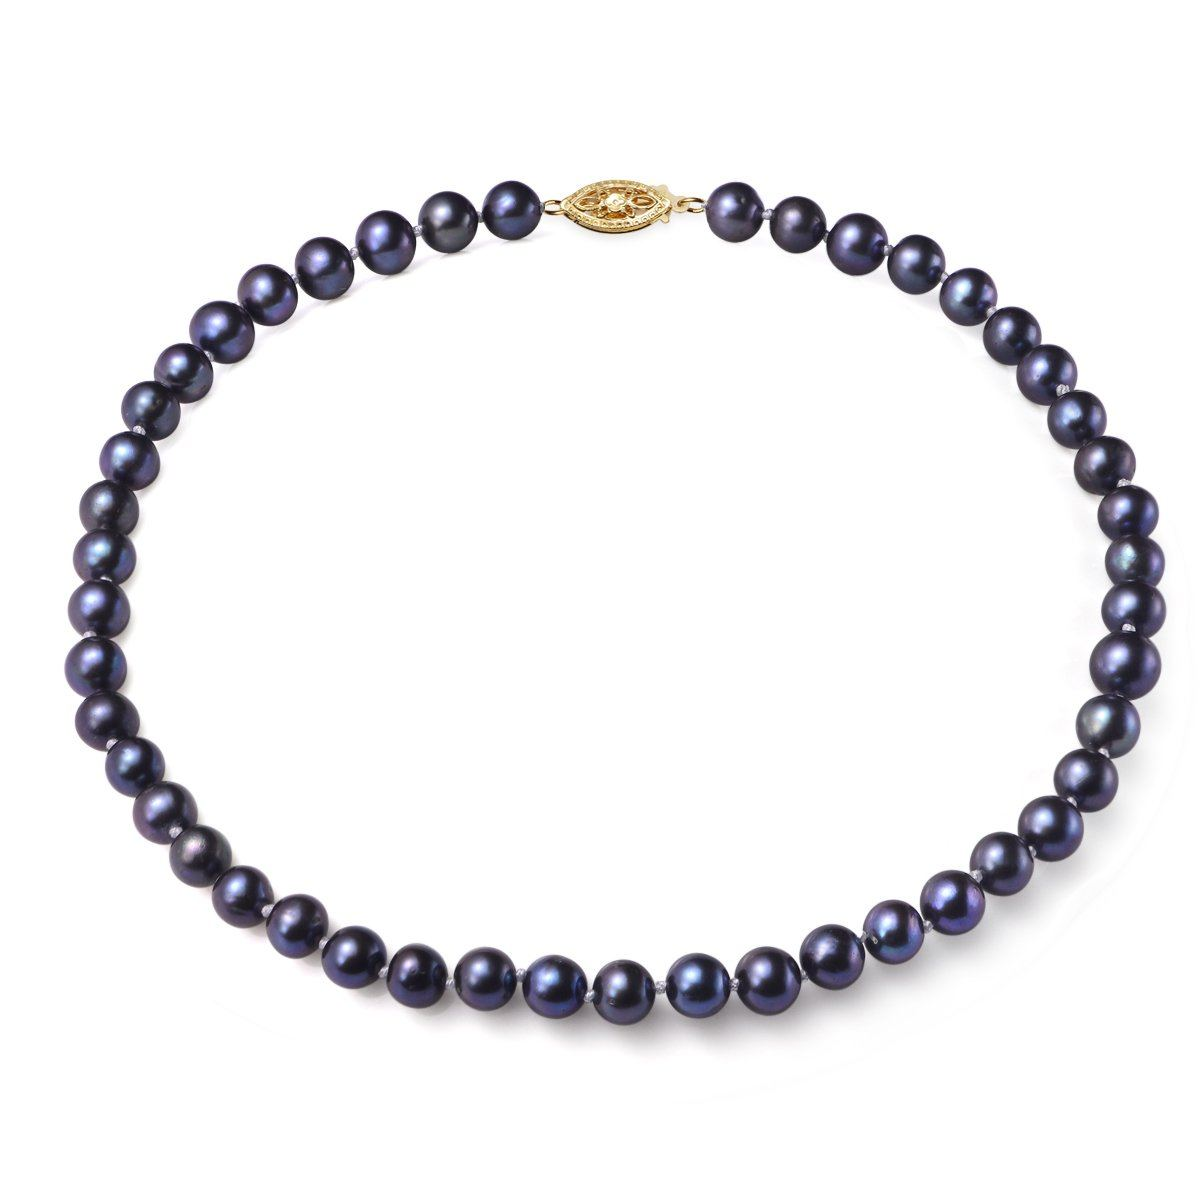 black 8-9mm, aa+, cultured freshwater pearl strand necklace with 14k yellow gold filled fish hook